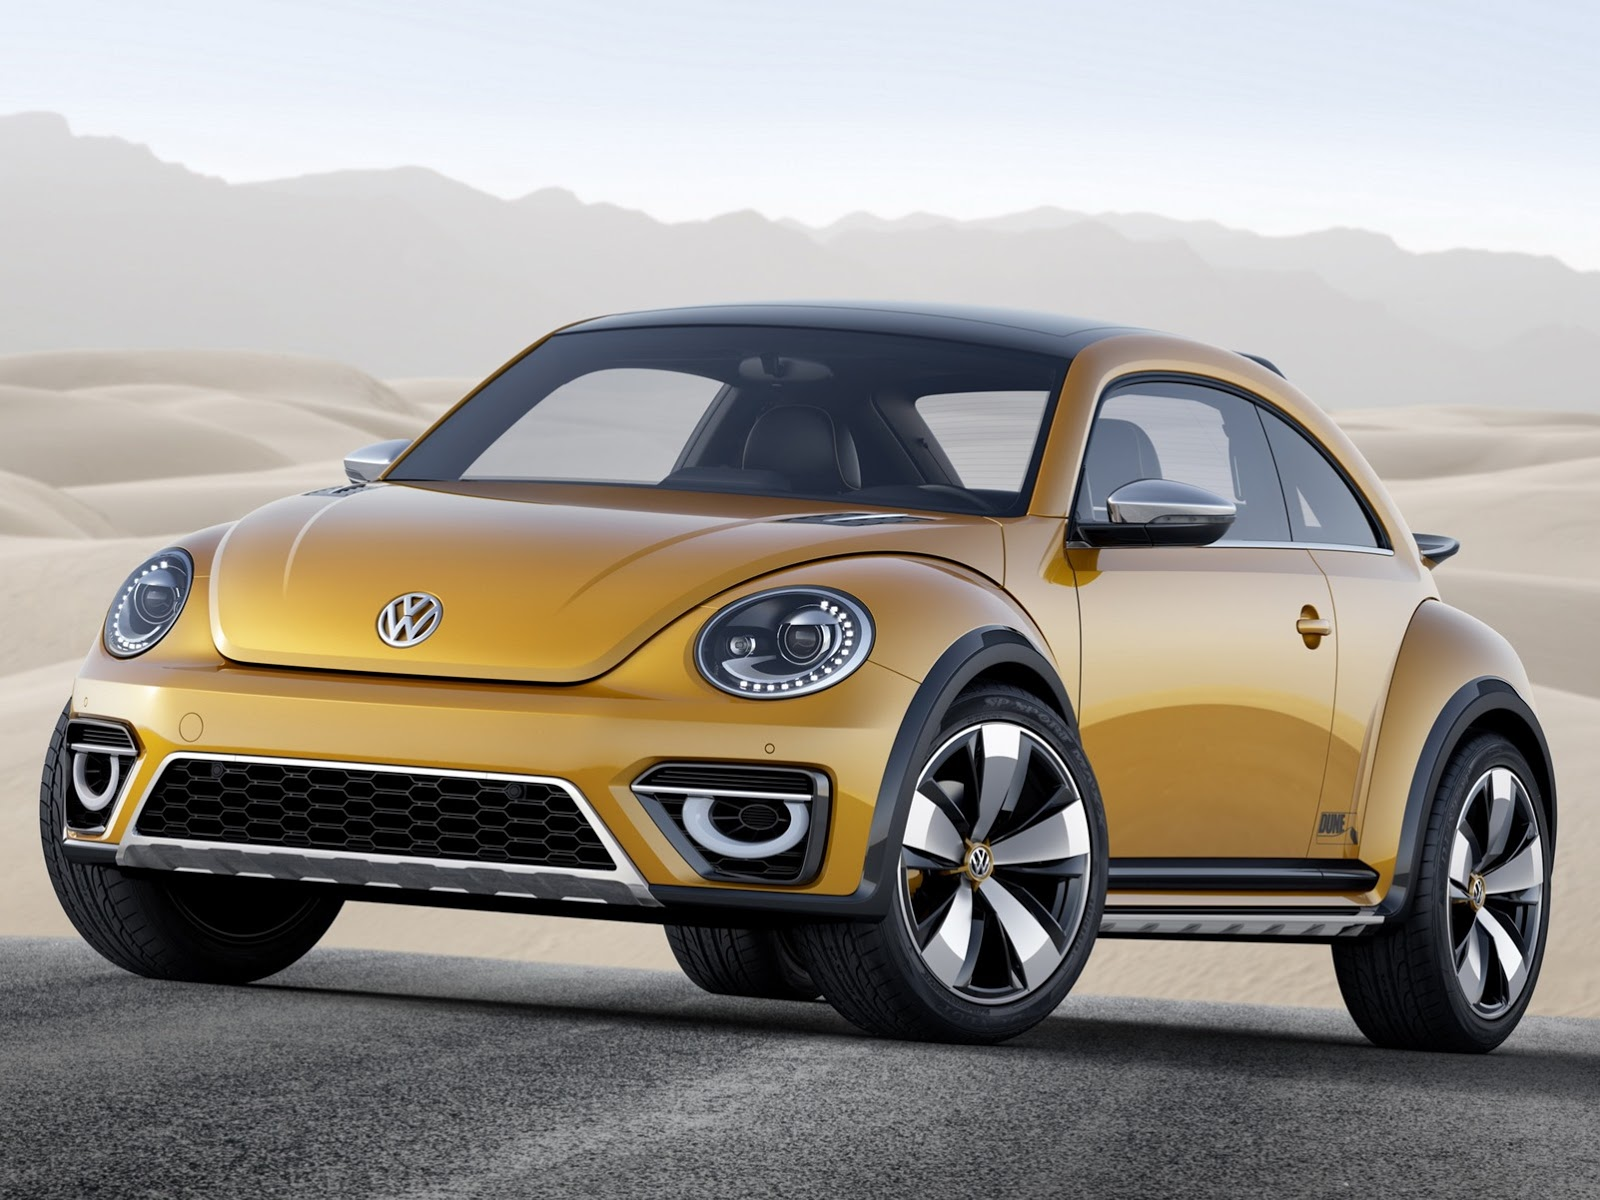 Baja Bug, Buggy, comeback, debüt, Detroit, featured, premiere, Volkswagen, VW Buggy, VW Käfer, VW New Beetle Dune Concept